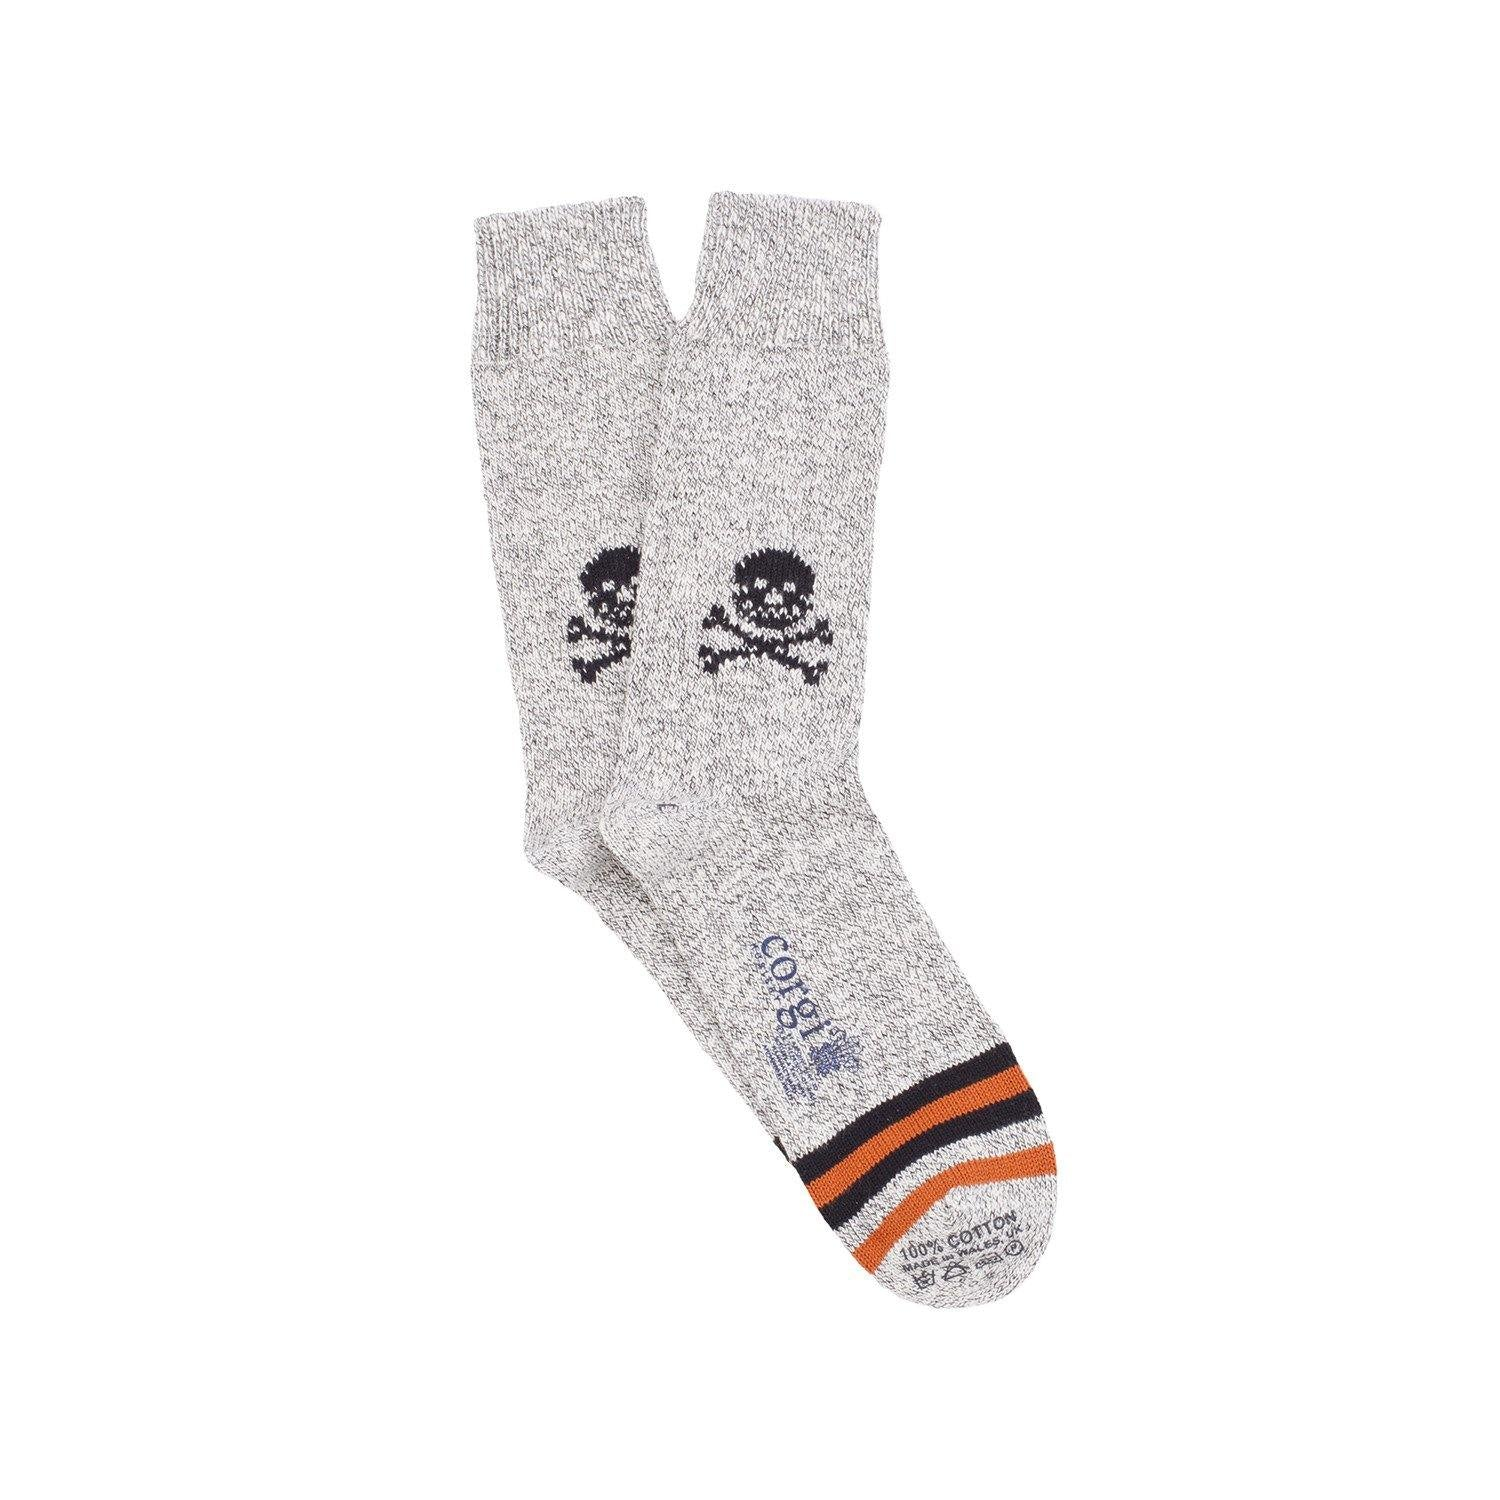 Skull & Crossbone Cotton Socks-onlybrown